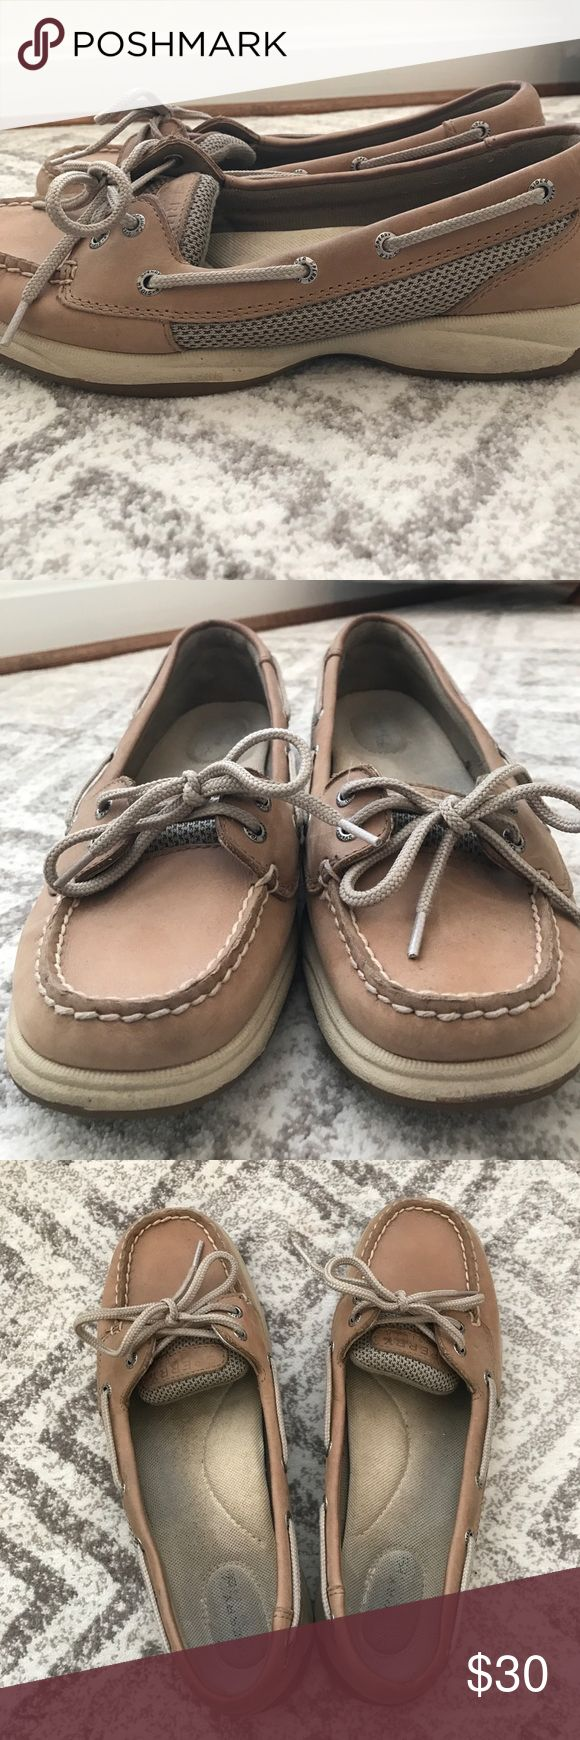 Sperry Women's Boat Shoe Used Sperry Angelfish shoes. Very comfortable and slightly worn. No big stains or scratches on the leather either. Sperry Top-Sider Shoes Athletic Shoes